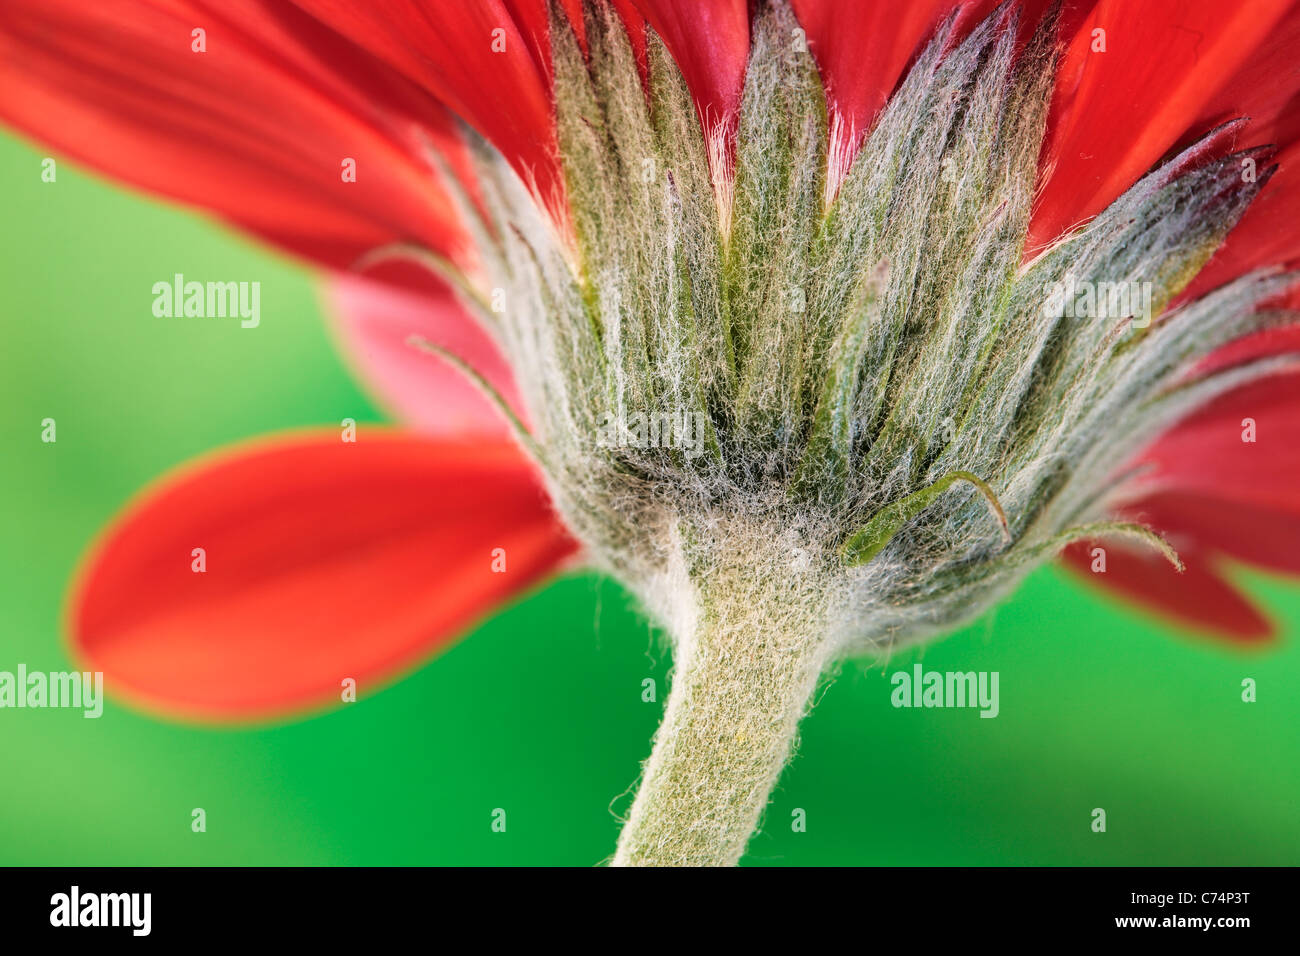 Close up of the stem of a red Chrysanthemum in spring - Stock Image